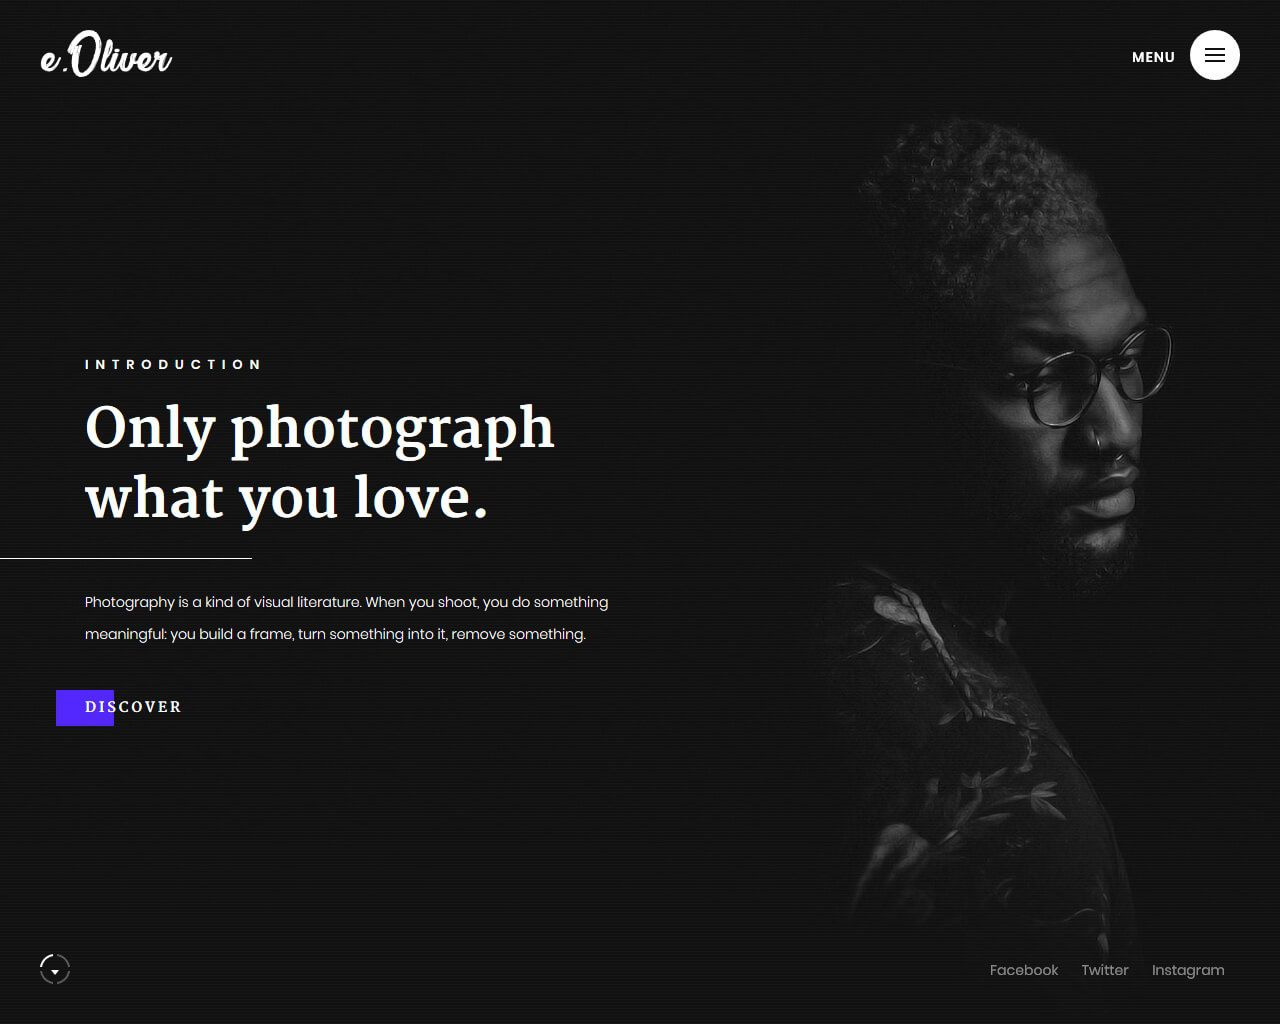 005 Fascinating Web Template For Photographer Image  PhotographyFull